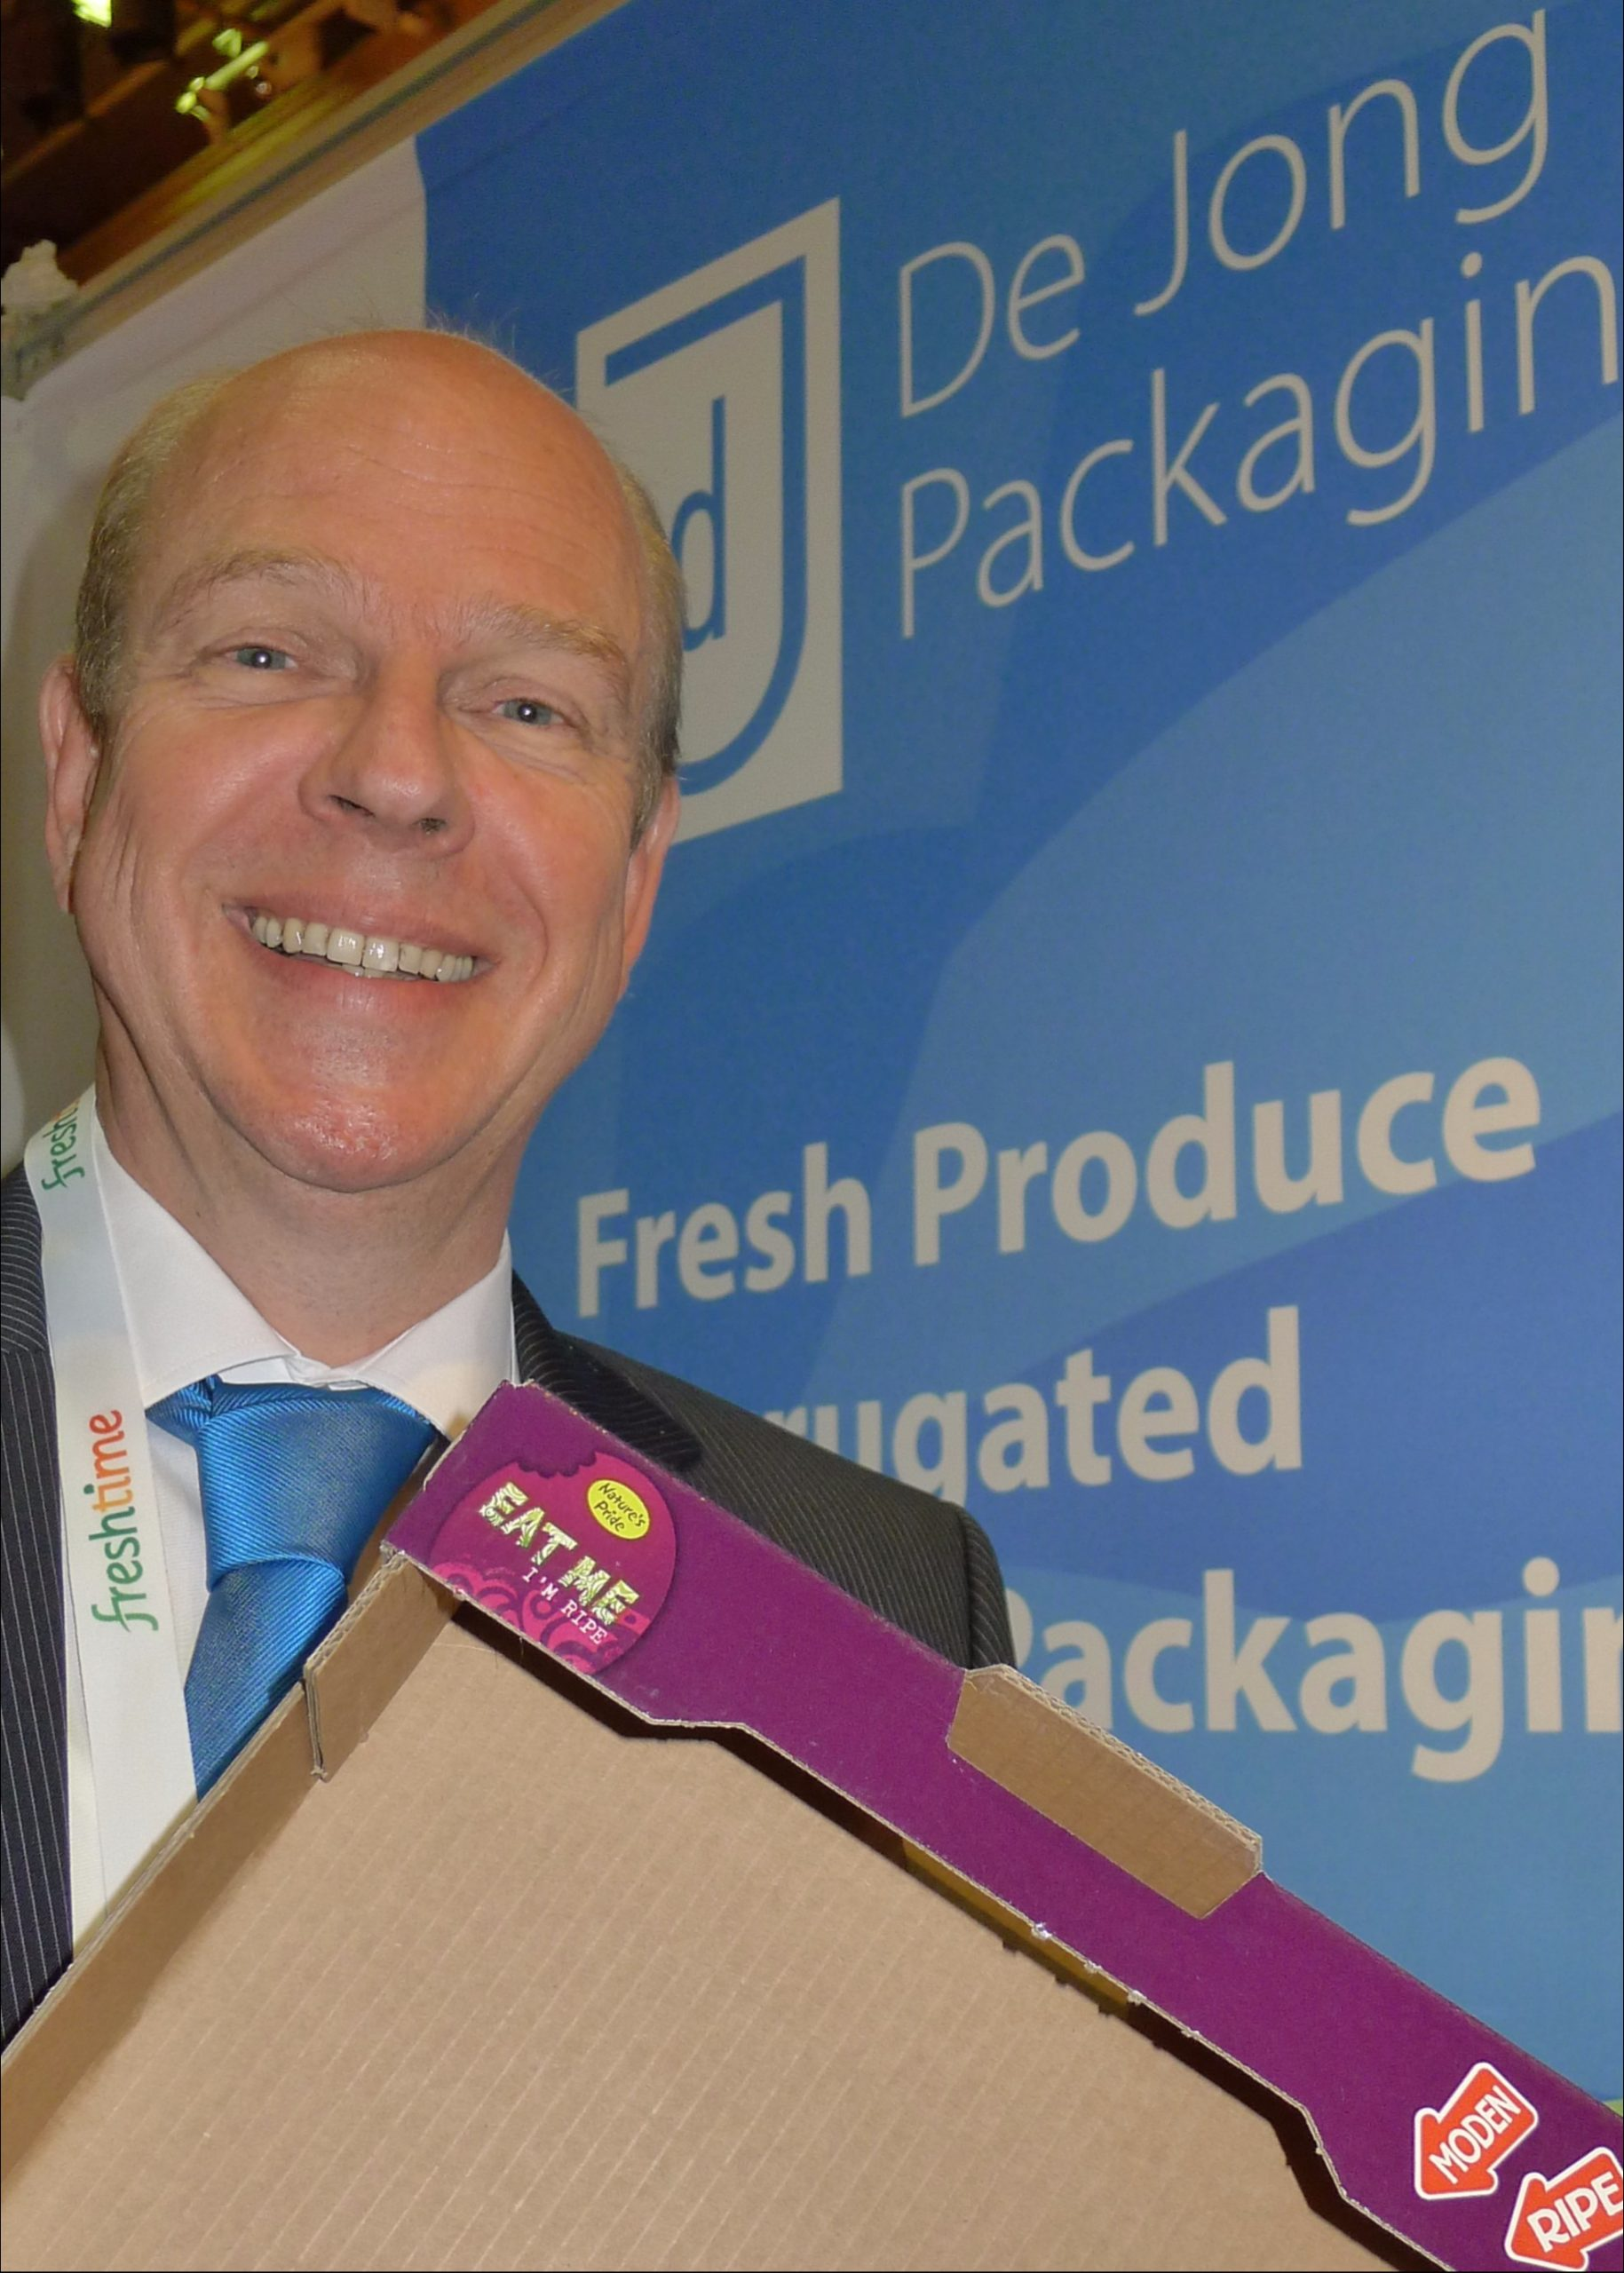 De Jong Packaging has started selling its corrugated packaging in the UK and has big ambitions there.